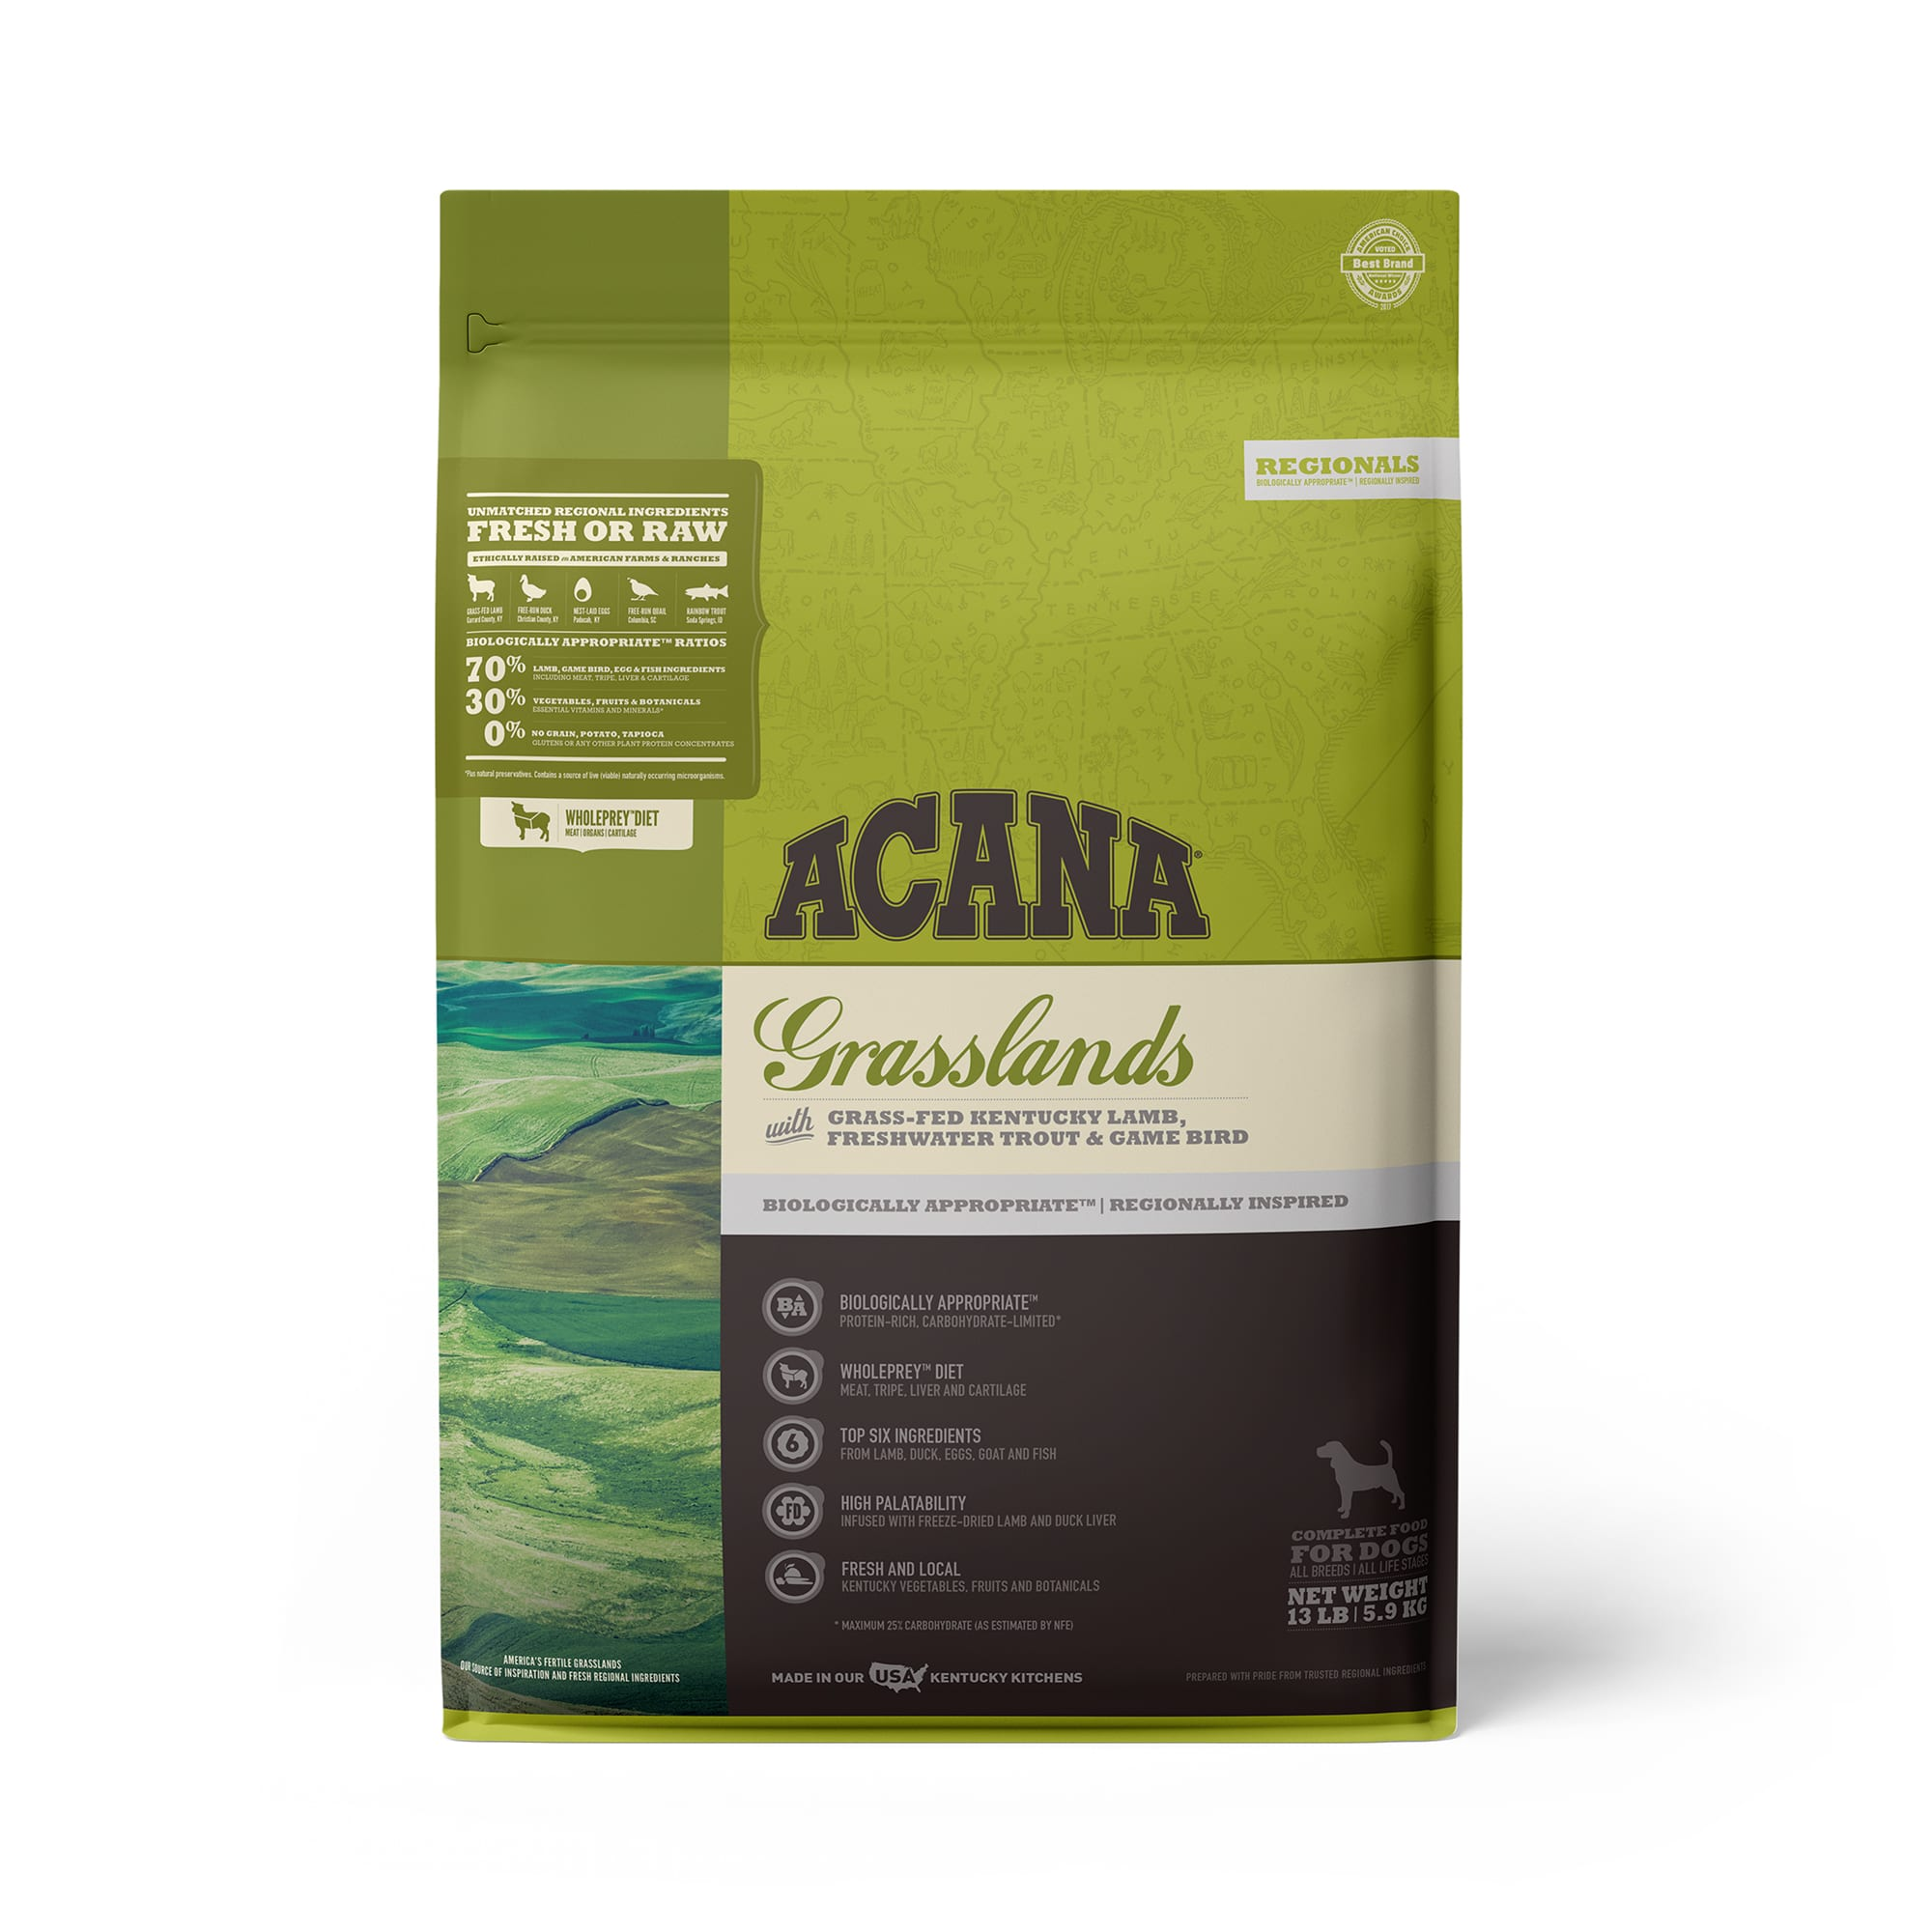 ACANA Grasslands Grain Free High Protein Freeze-Dried Coated Lamb Duck Trout and Quail Dry Dog Food, 13 lbs.